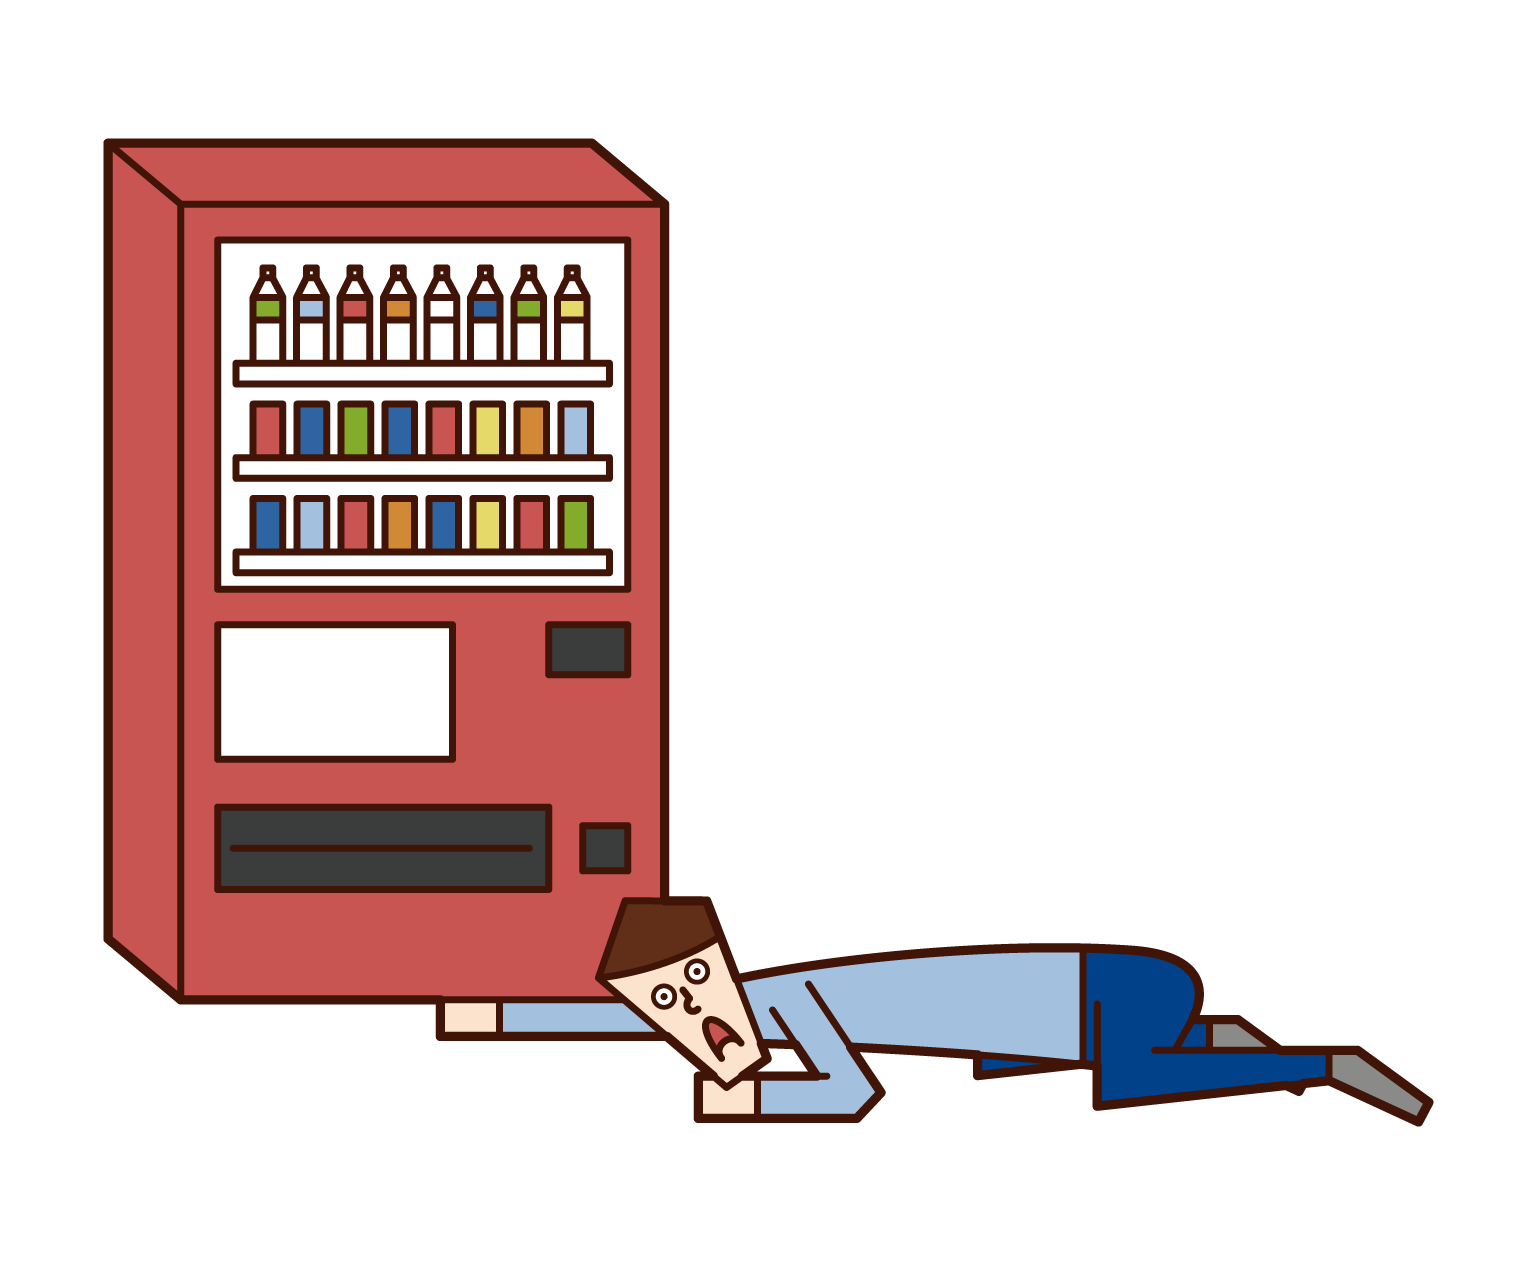 Illustration of a man looking for money under a vending machine